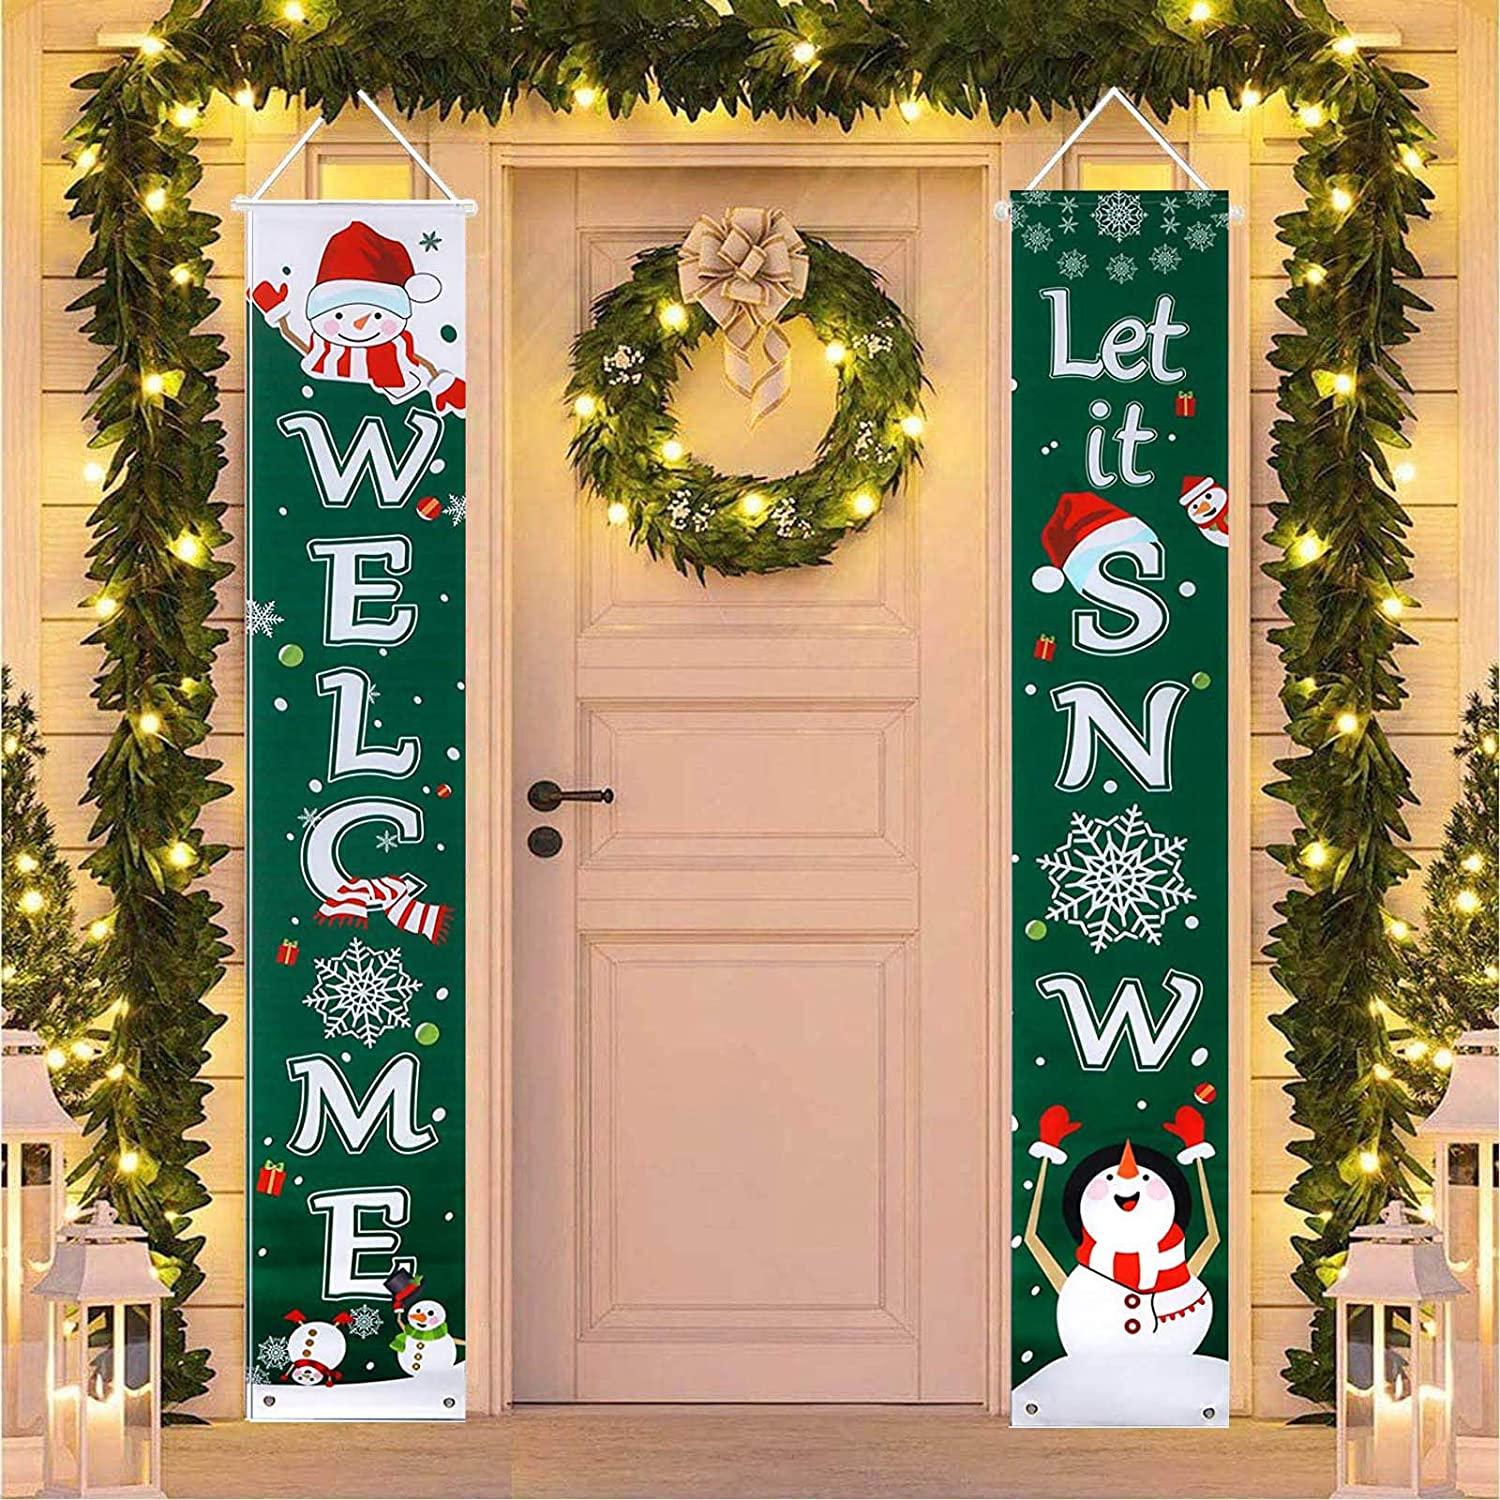 """N4 Let it Snow Welcome Christmas Porch Sign, Xmas Christmas Decoration Decor Clearance Hanging Banners Flag for Winter Holiday Home Yard Indoor Outdoor Front Door Living Room Kitchen Wall, 12"""" x 71"""""""